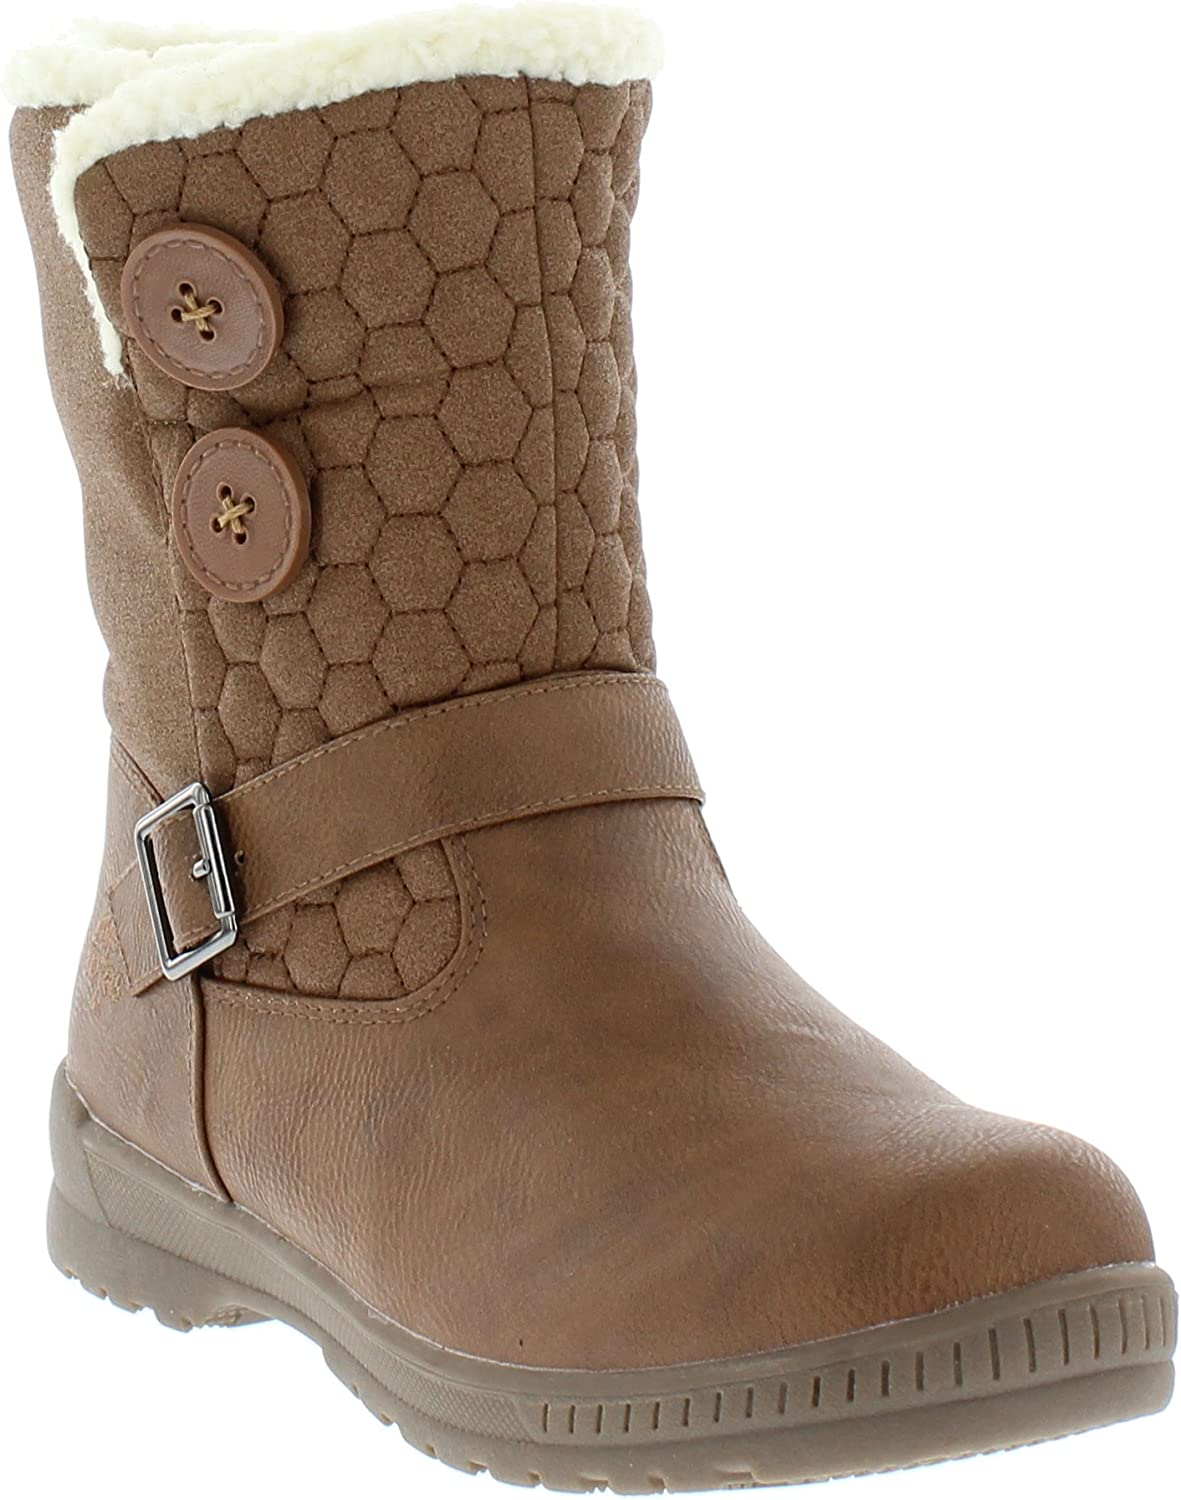 totes Women's Cold Weather Circle Pull-On Waterproof Insulated Mid-Calf Winter Boots for Comfort